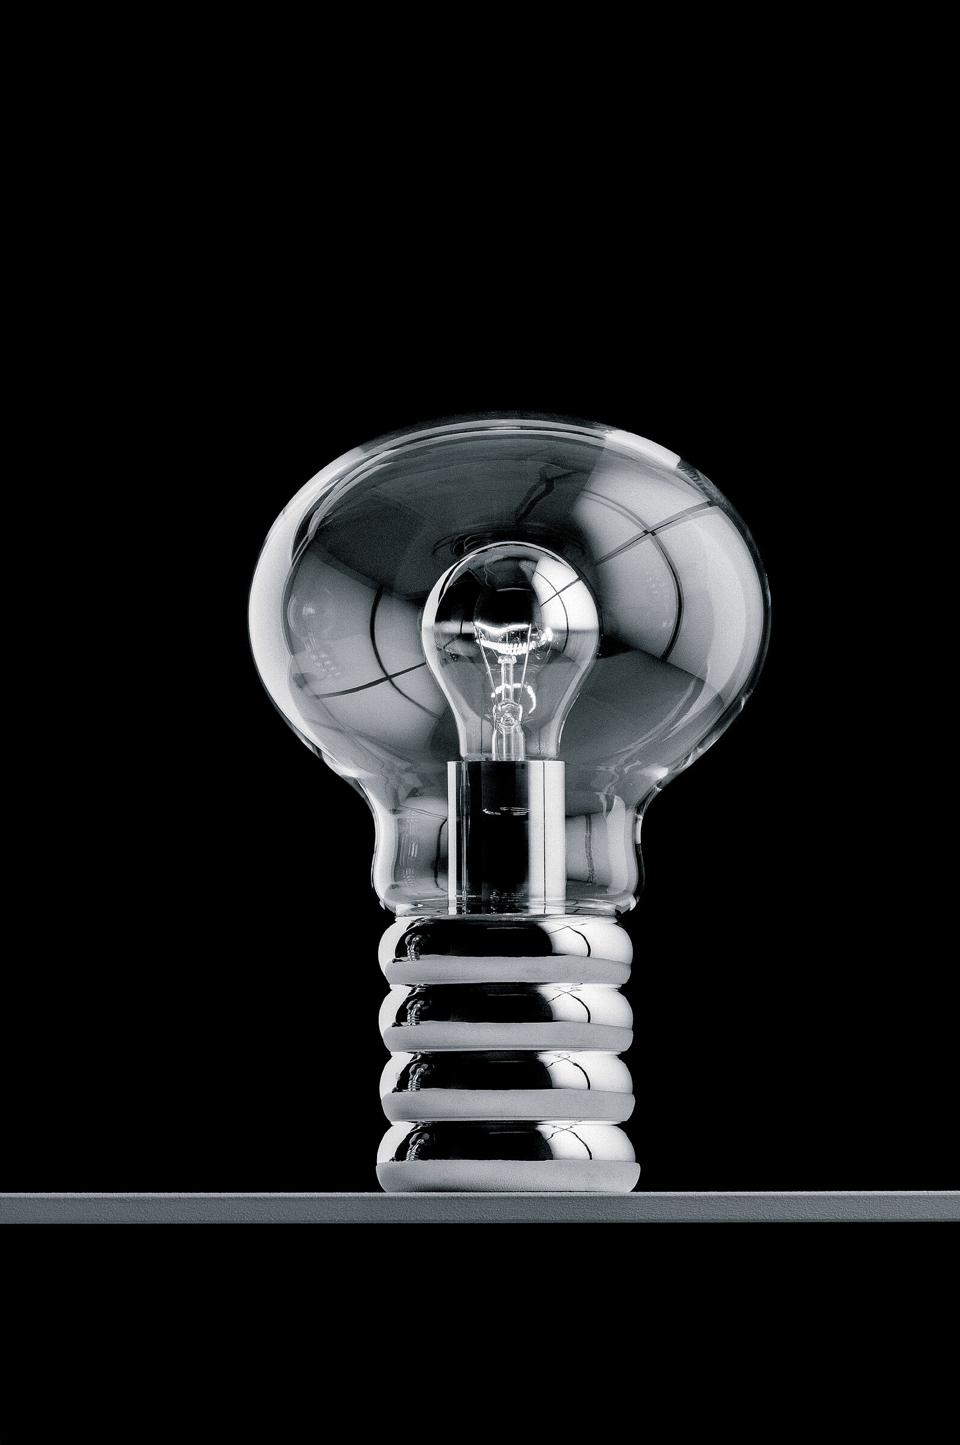 Ingo Maurer, manufactured by Ingo Maurer GmbH, Bulb Light, designed 1966, metal, glass, and bulb. © 1966 Ingo Maurer / Photo © tomvackphotographer